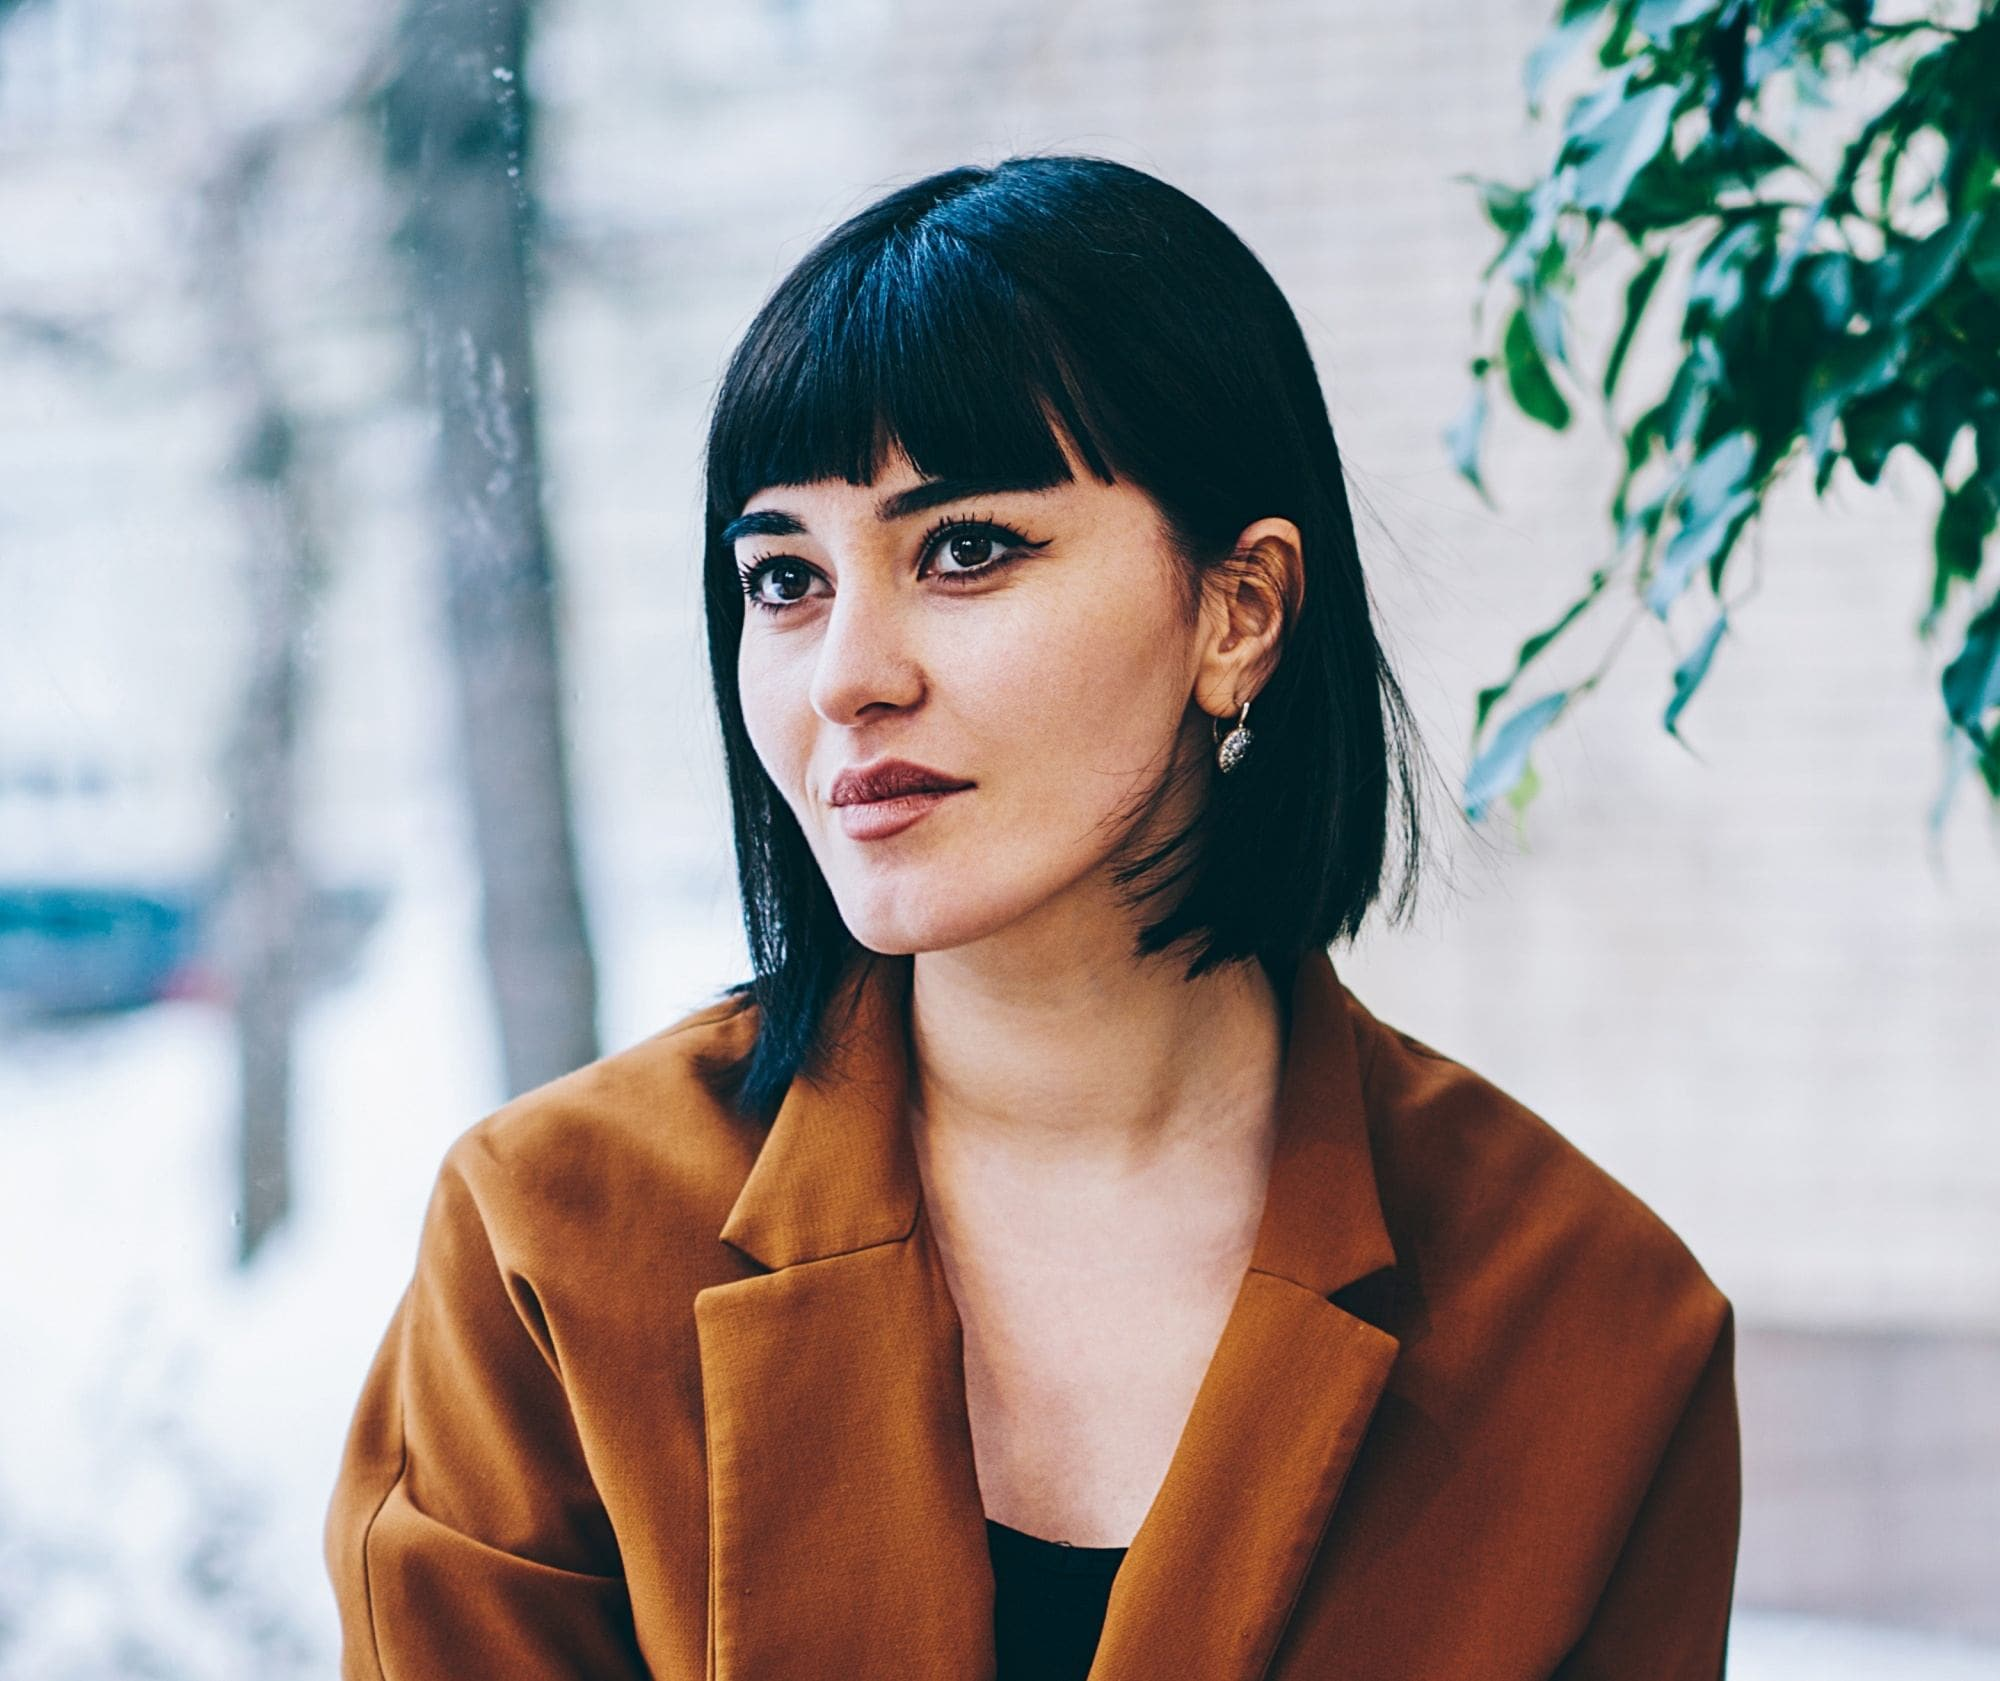 Woman with black square haircut with bangs